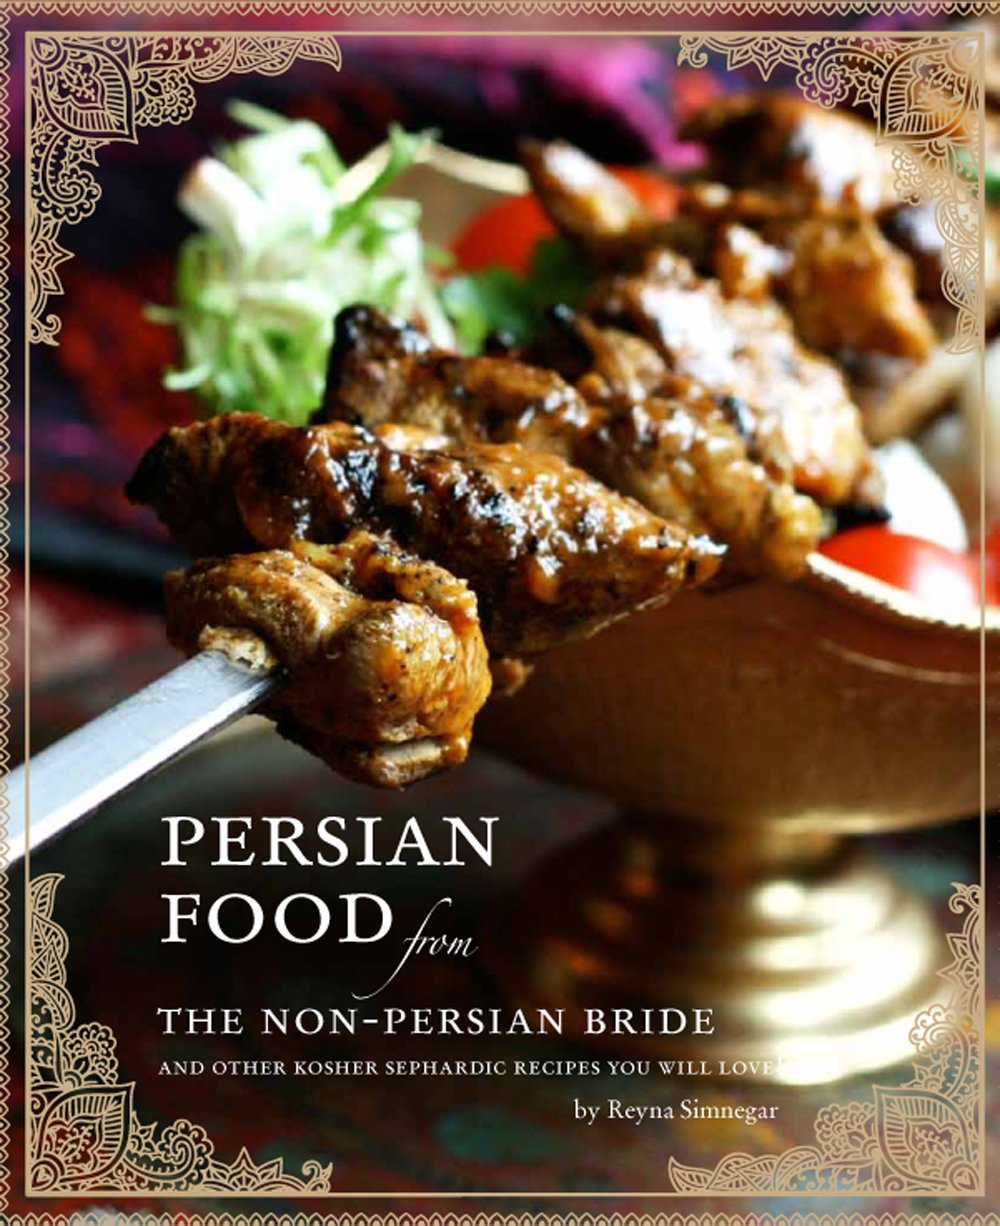 Persian food from the non persian bride and other sephardic kosher persian food from the non persian bride and other sephardic kosher recipes you will love reyna simnegar 9781583303252 amazon books forumfinder Choice Image